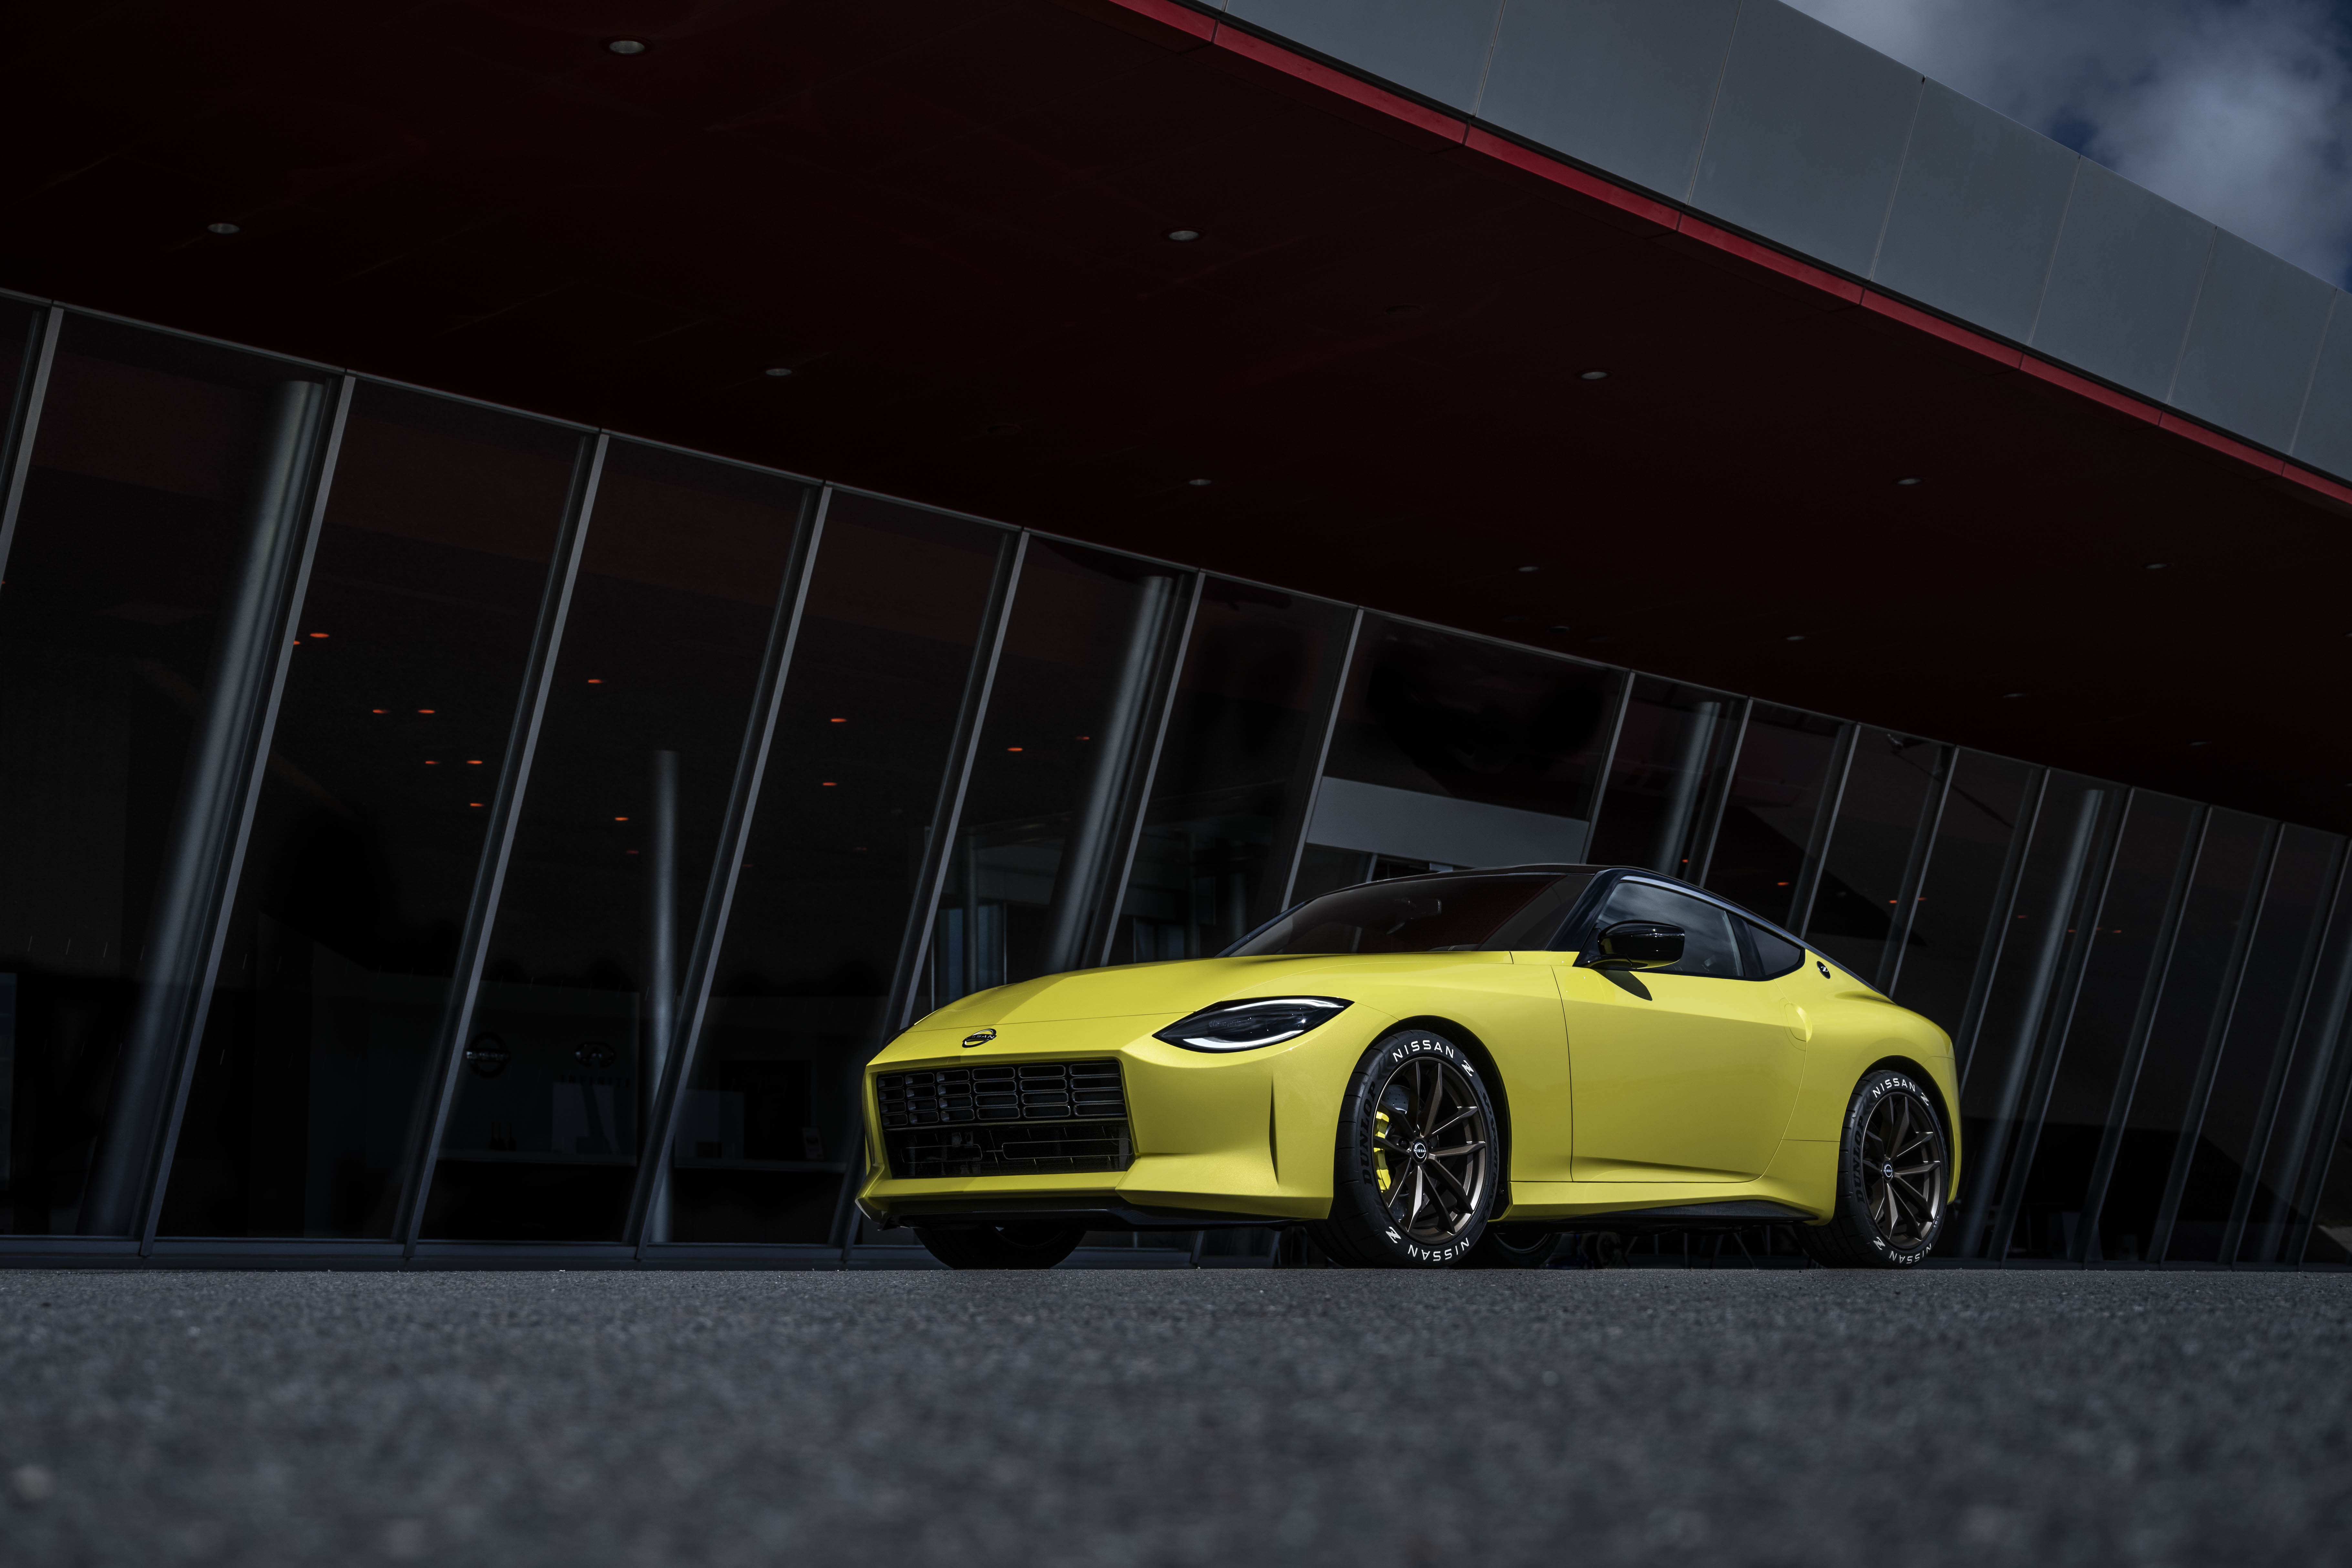 Nissan looks to combine elements of past, present and future in the next Z